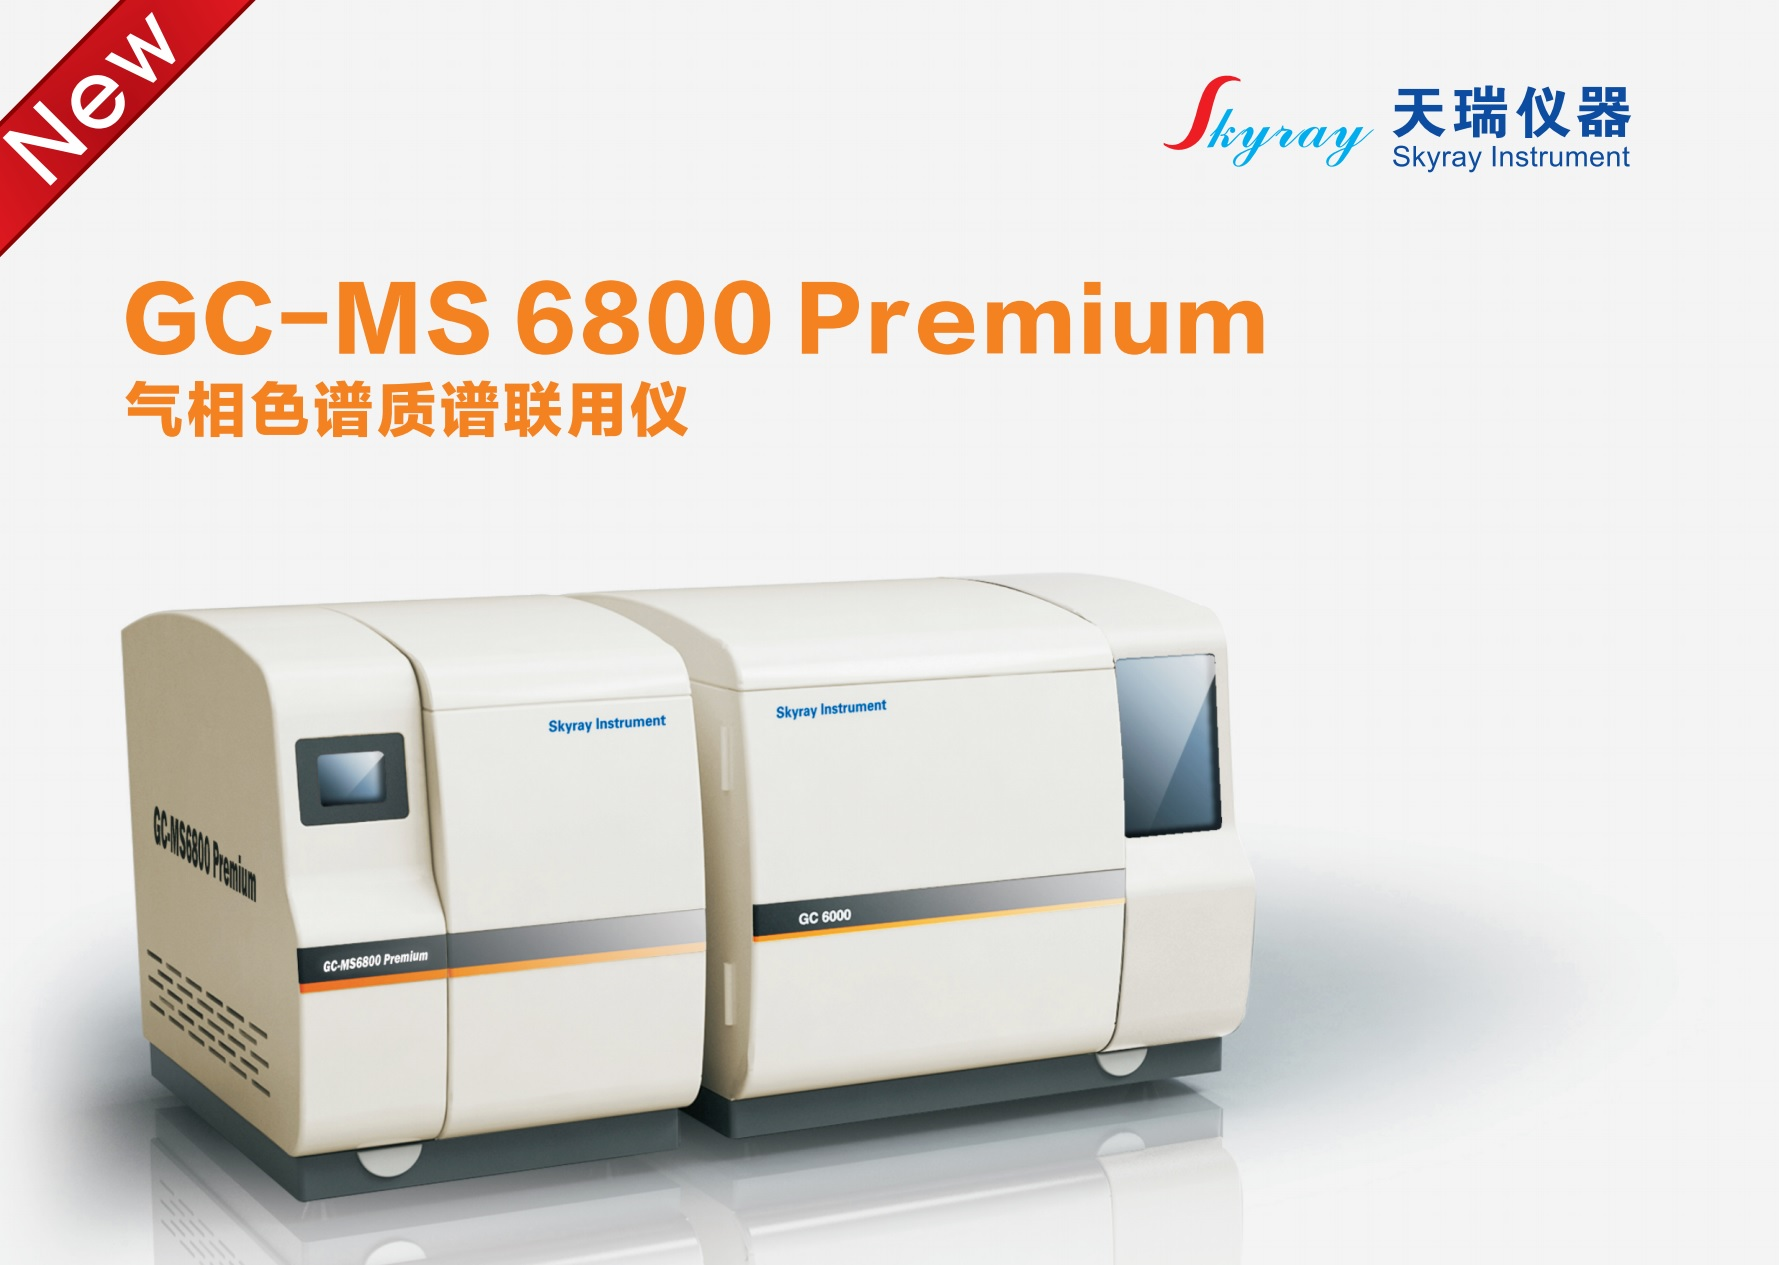 Jiangsu Skyray Instrument Co., Ltd.-GC-MS 6800 P New type